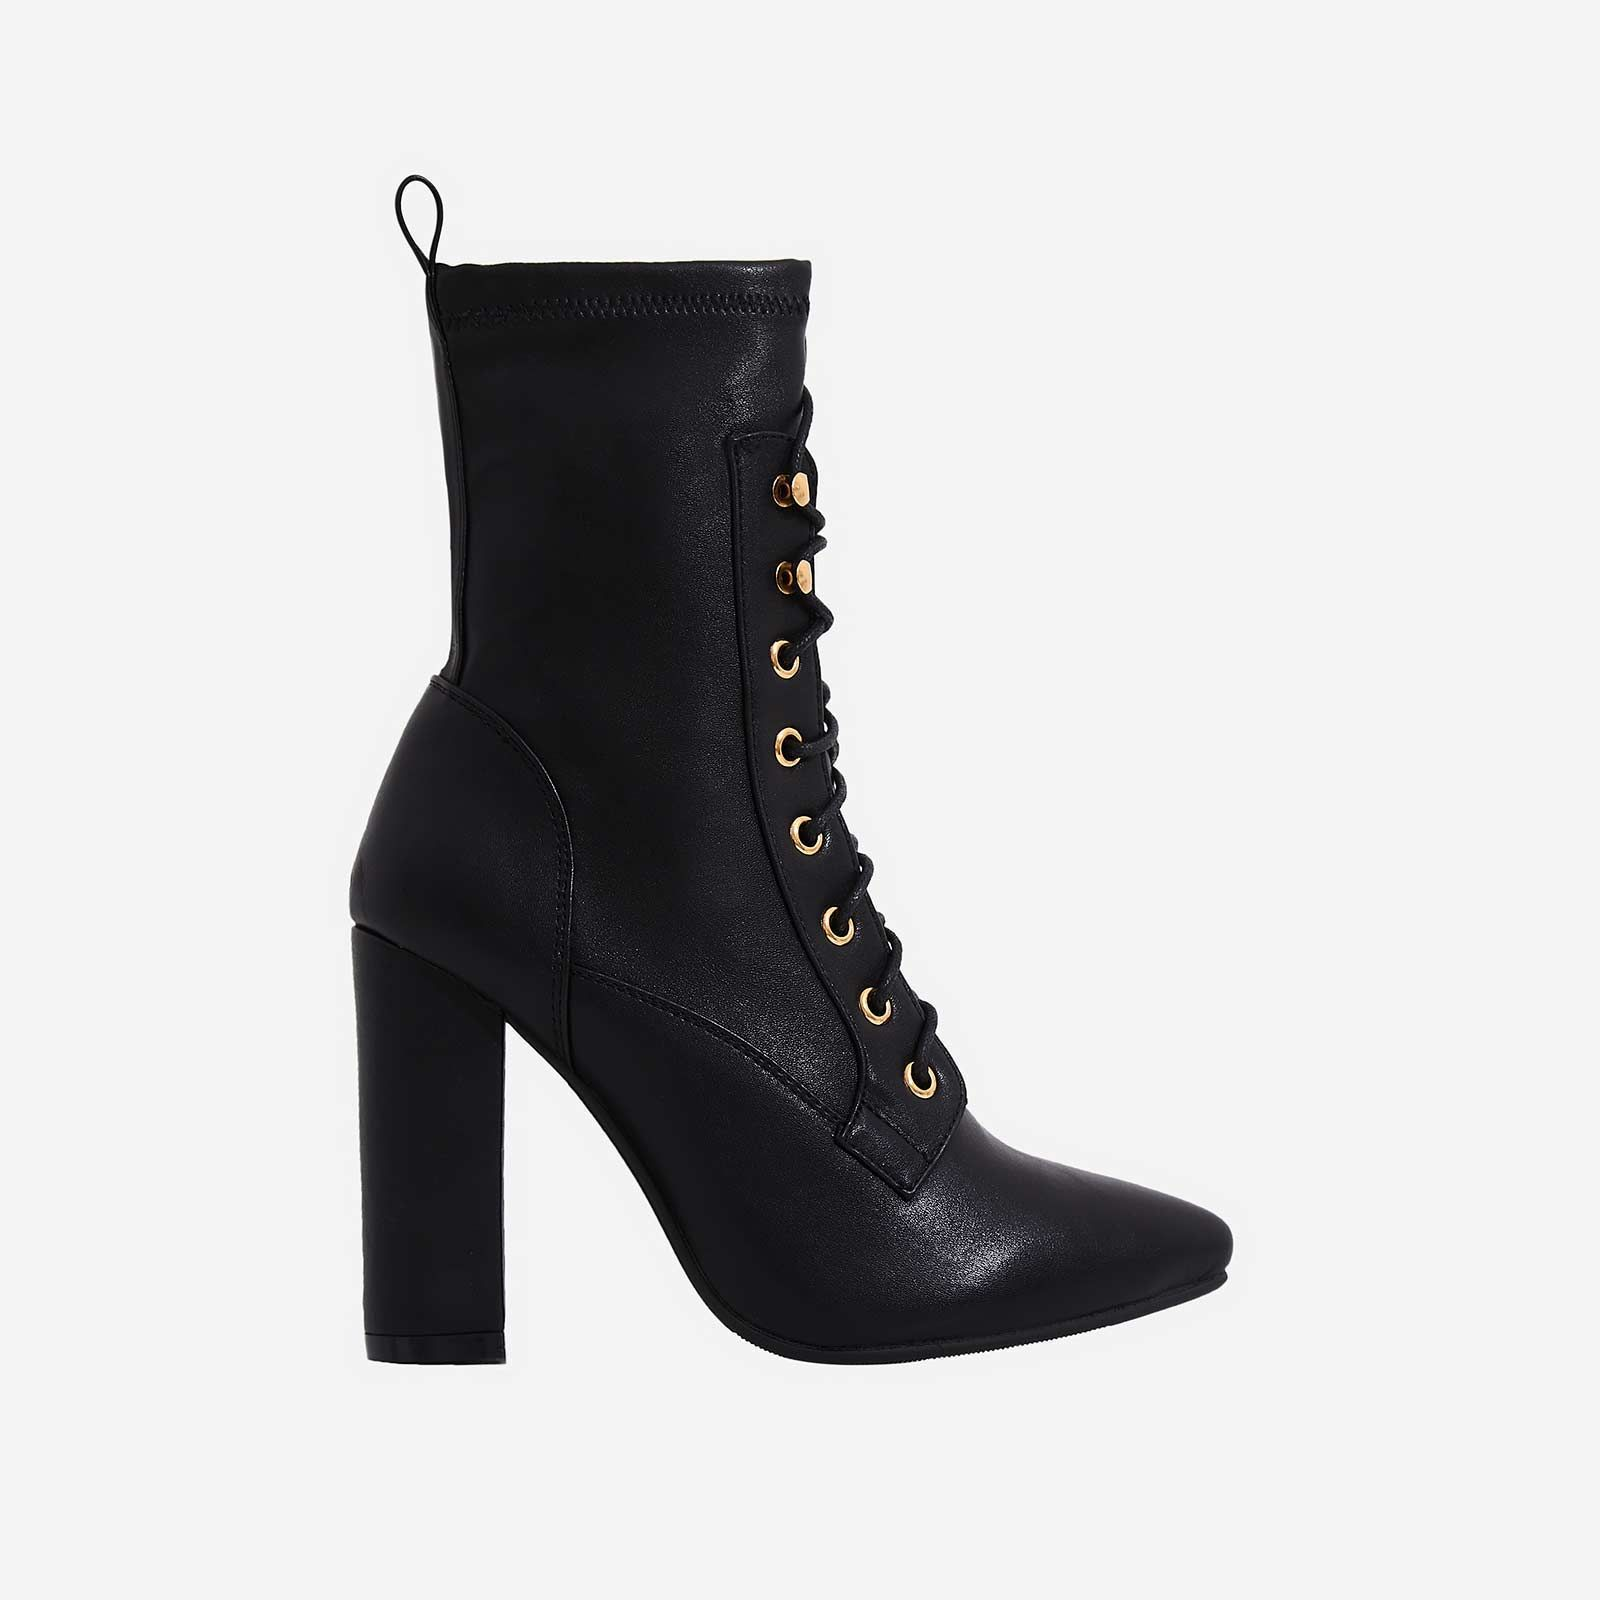 37ac33e7dedc Maud Lace Up Block Heel Ankle Boot In Black Faux Leather in 2019 ...